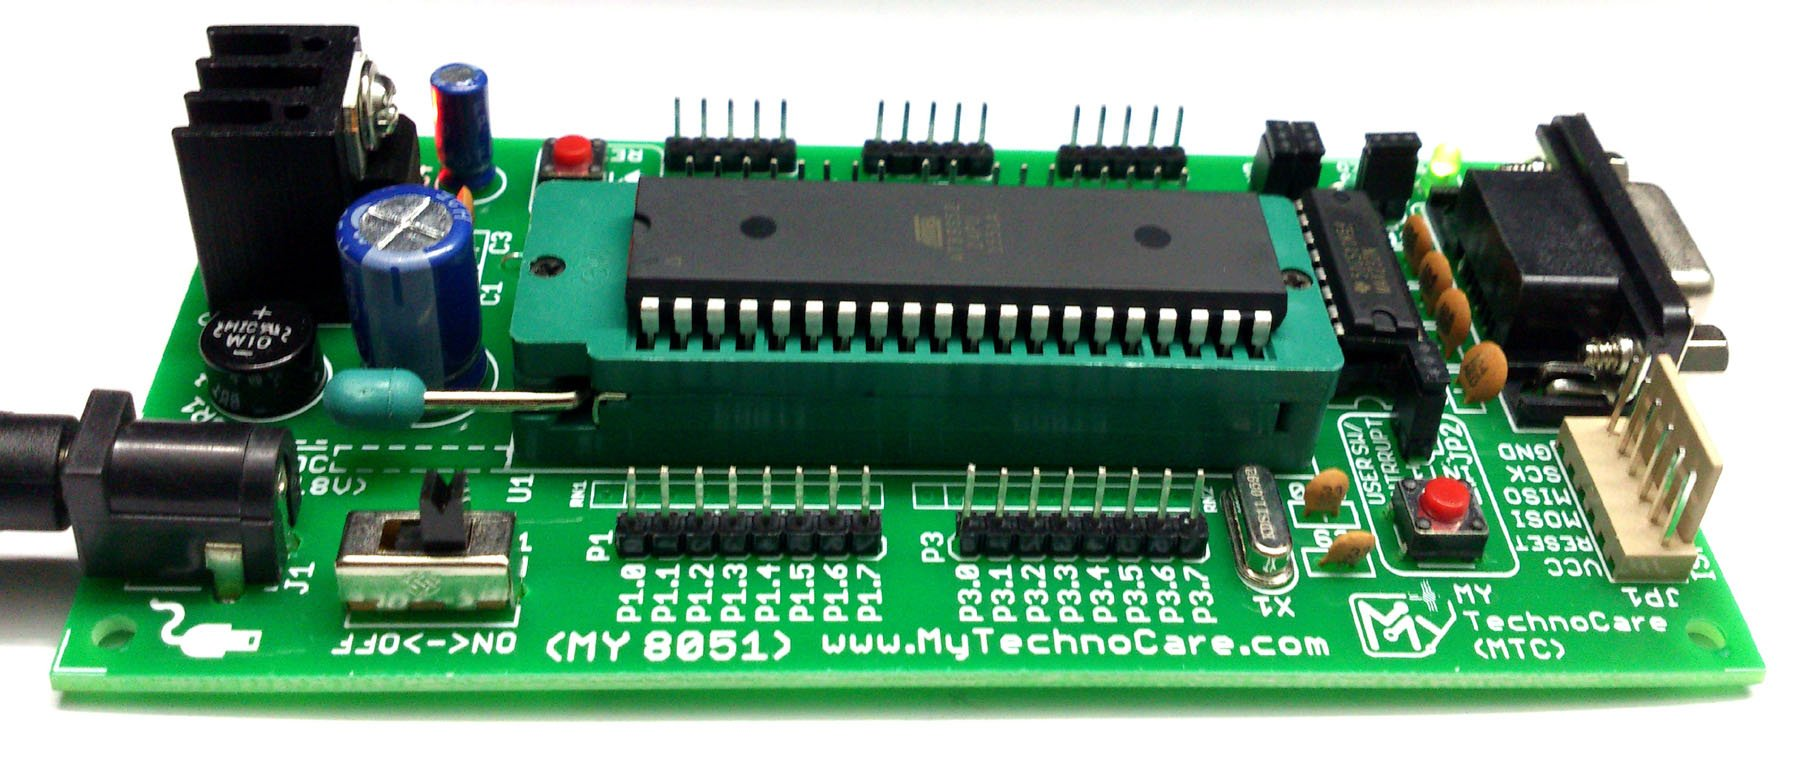 medium resolution of how to programmer 8051 microcontroller chip 89s52 board interfaceing 16x2 lcd usb programmer low price at89s52